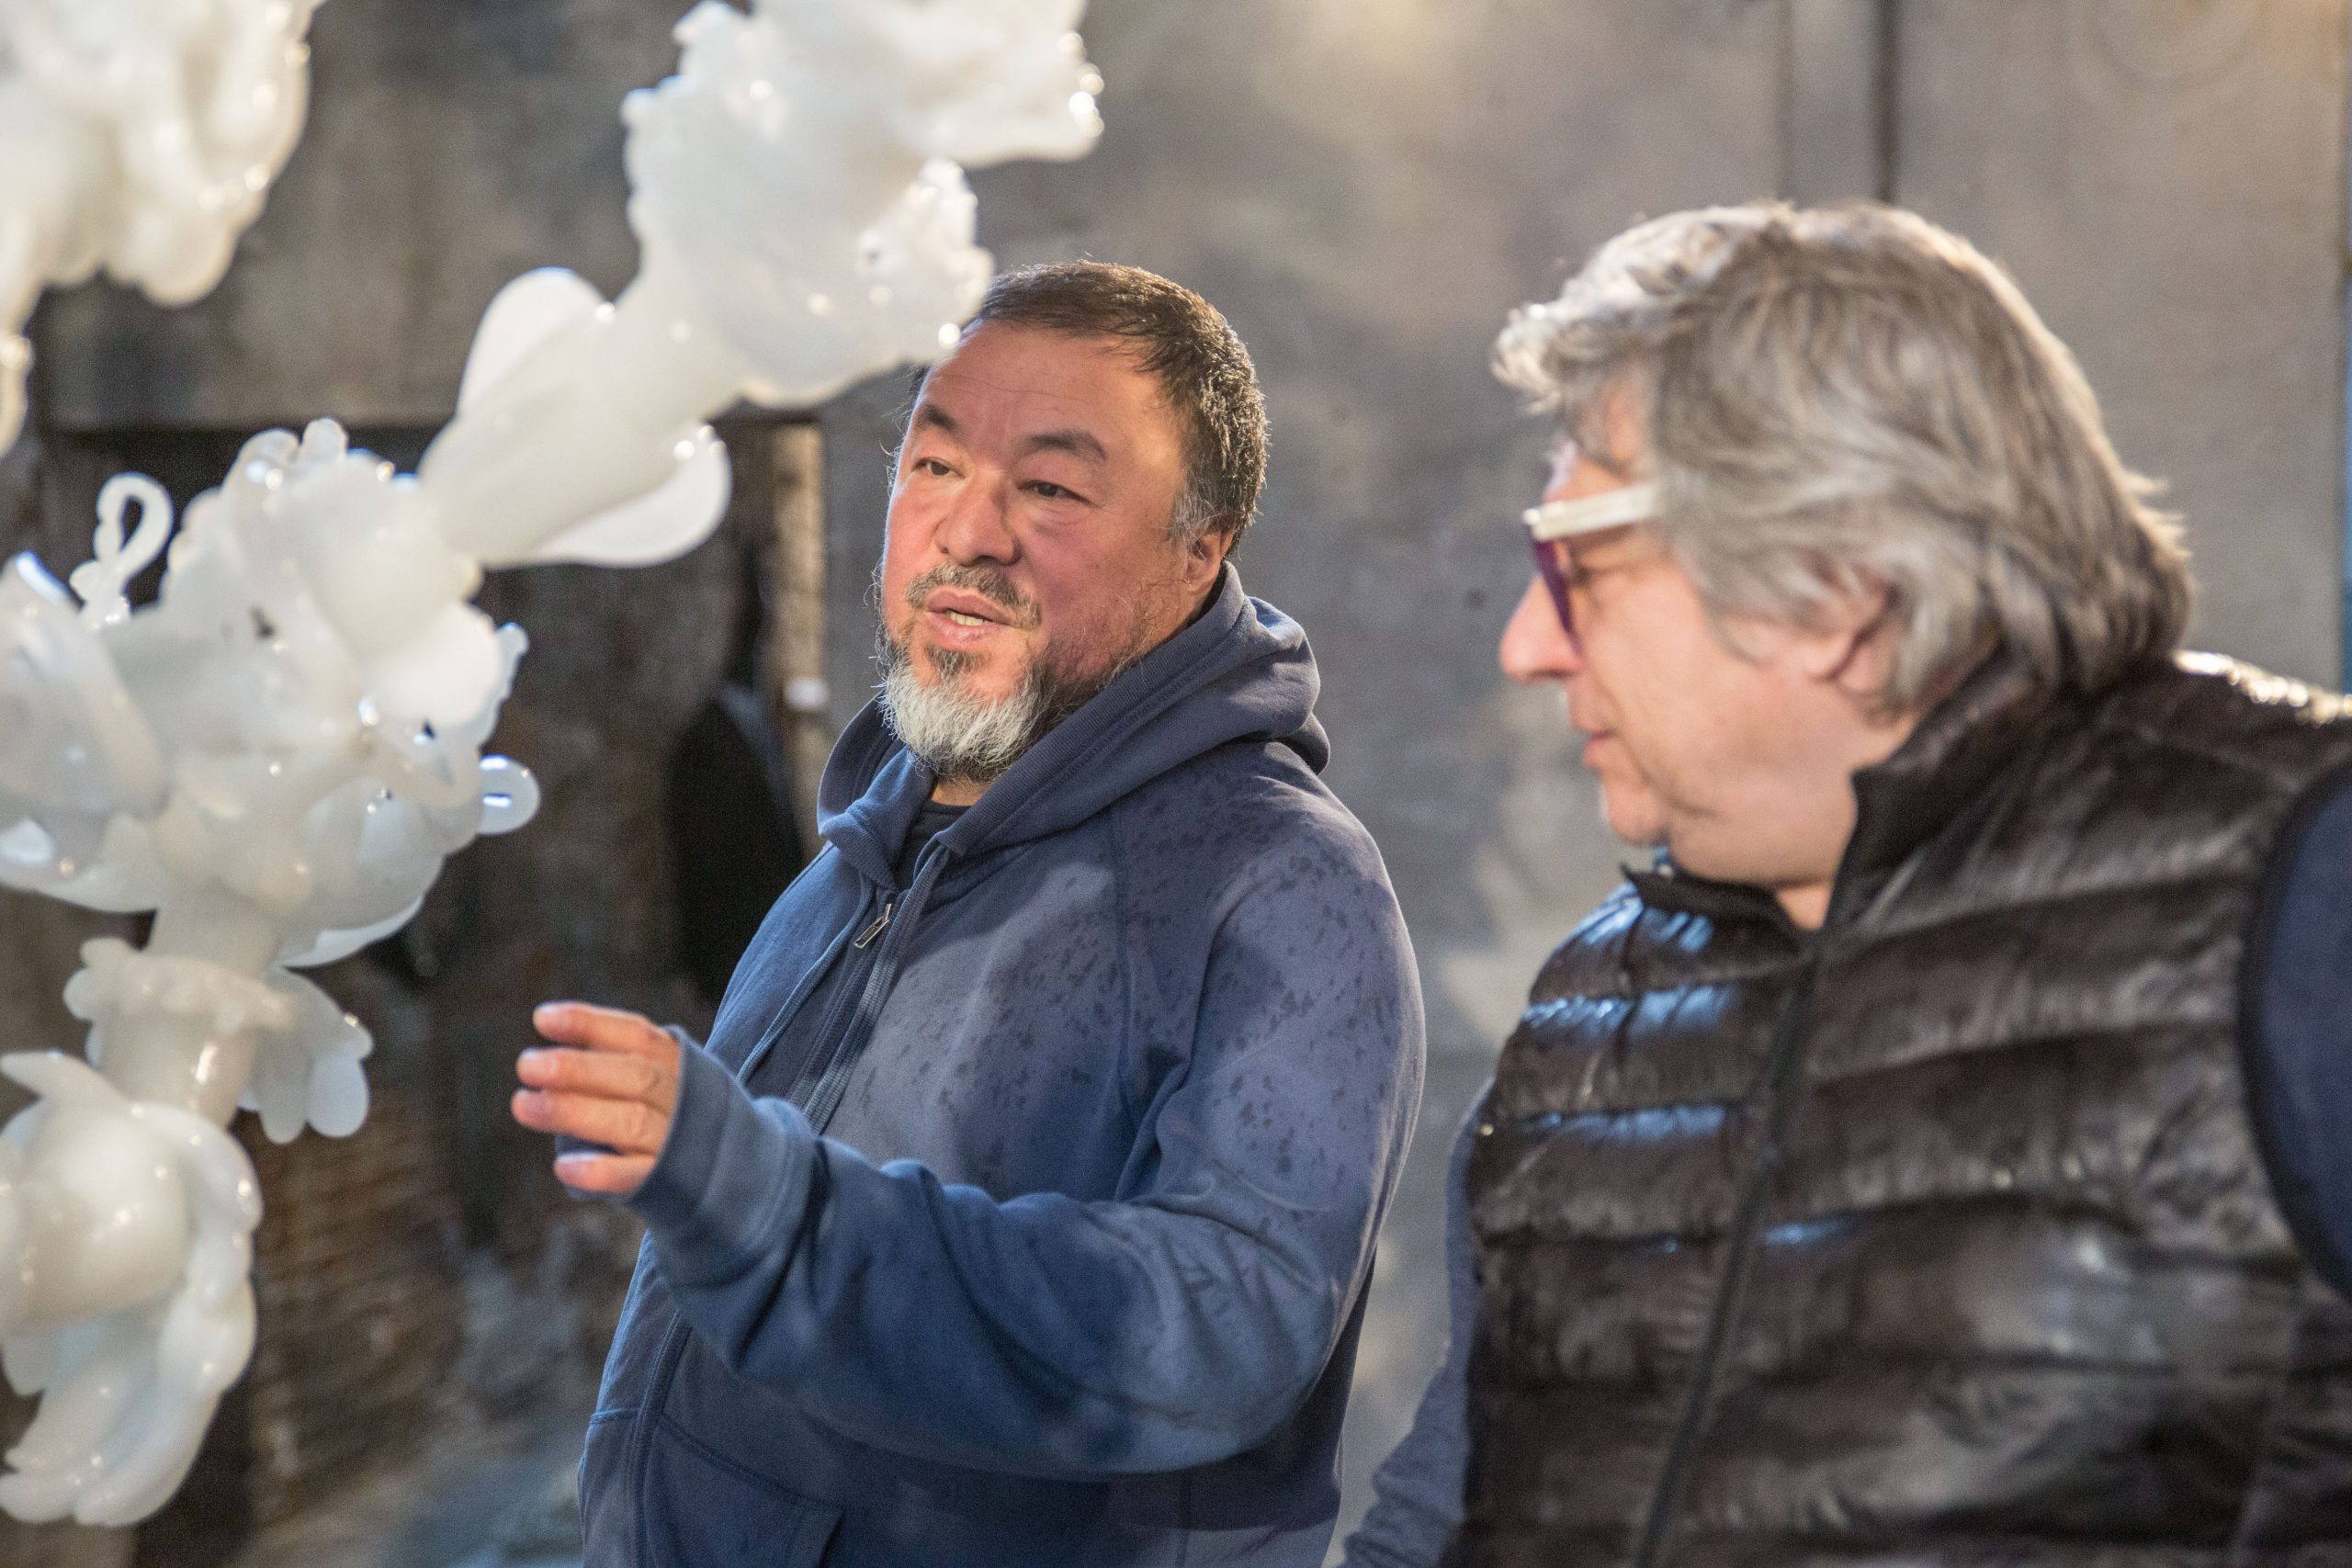 Ai Weiwei and Adriano Bering working for Glasstress 2017